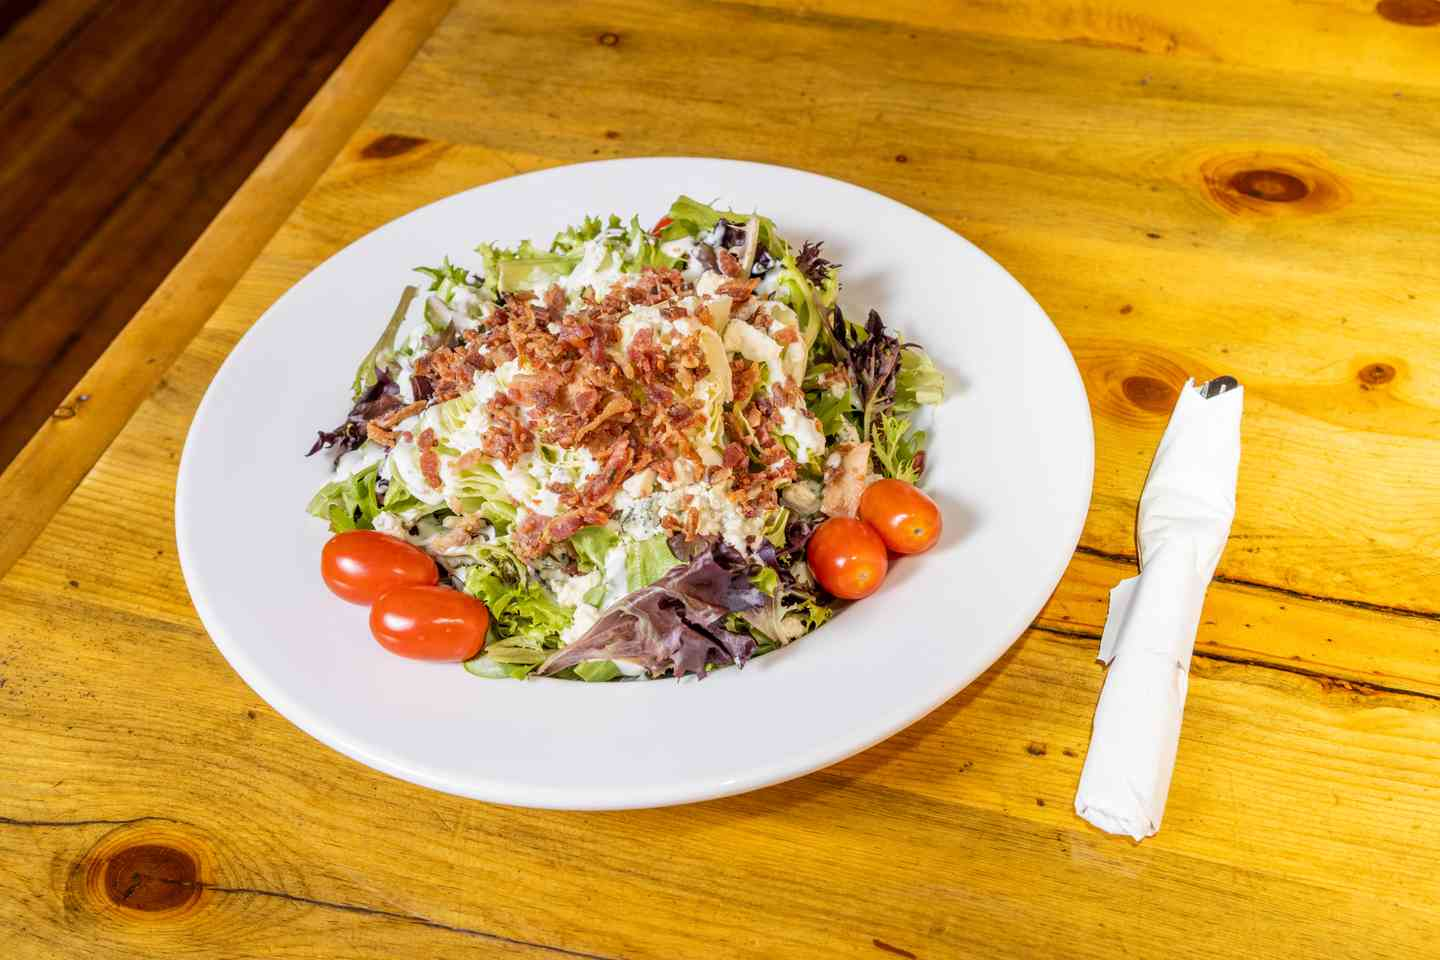 Rancher's Wedge Salad